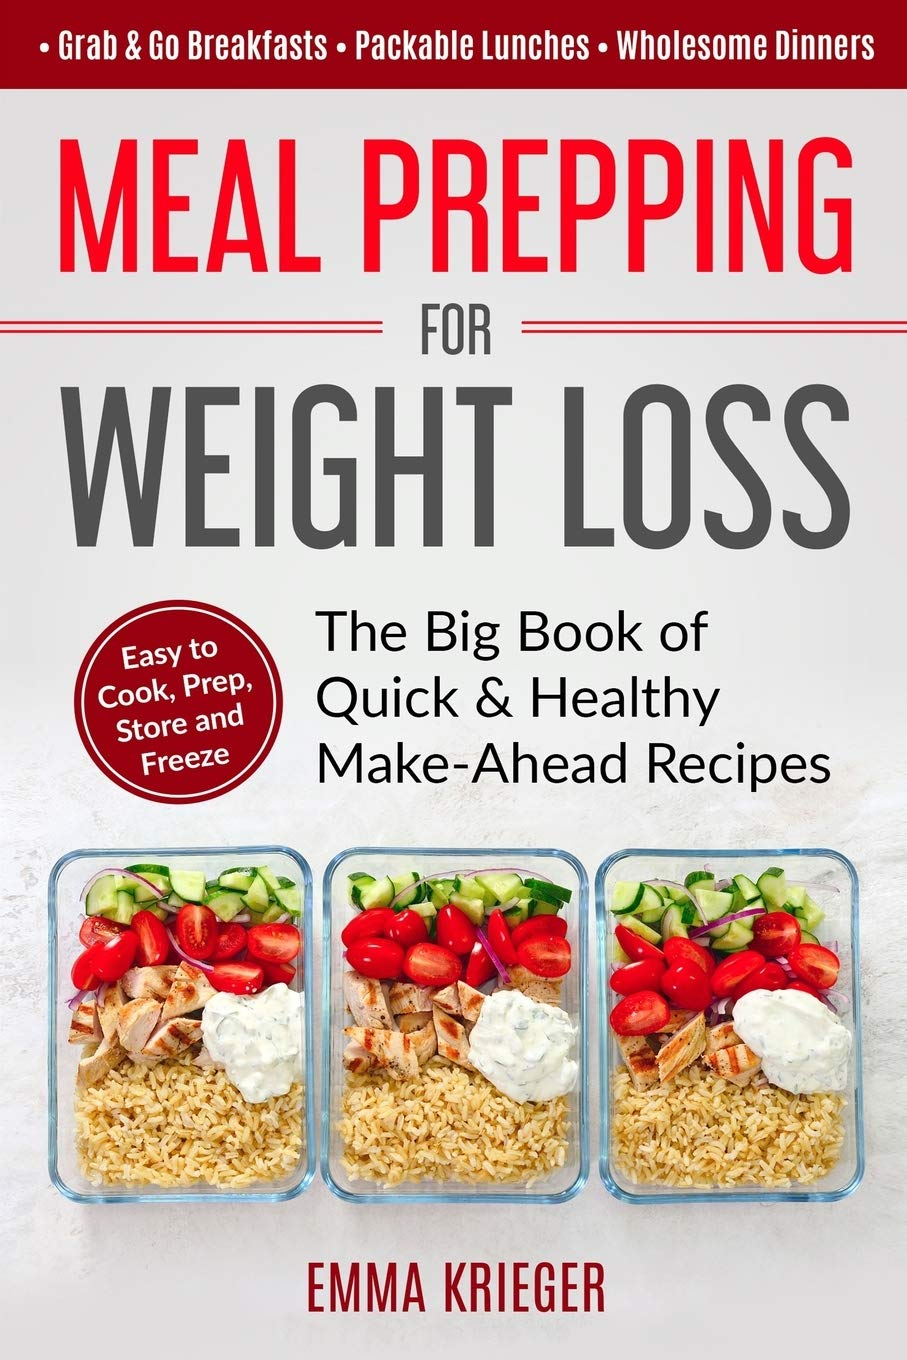 Meal Prepping For Weight Loss The Big Book Of Quick Healthy Make Ahead Recipes Easy To Cook Prep Store Freeze Packable Lunches Grab Go Breakfasts Wholesome Dinners 120 Recipes With